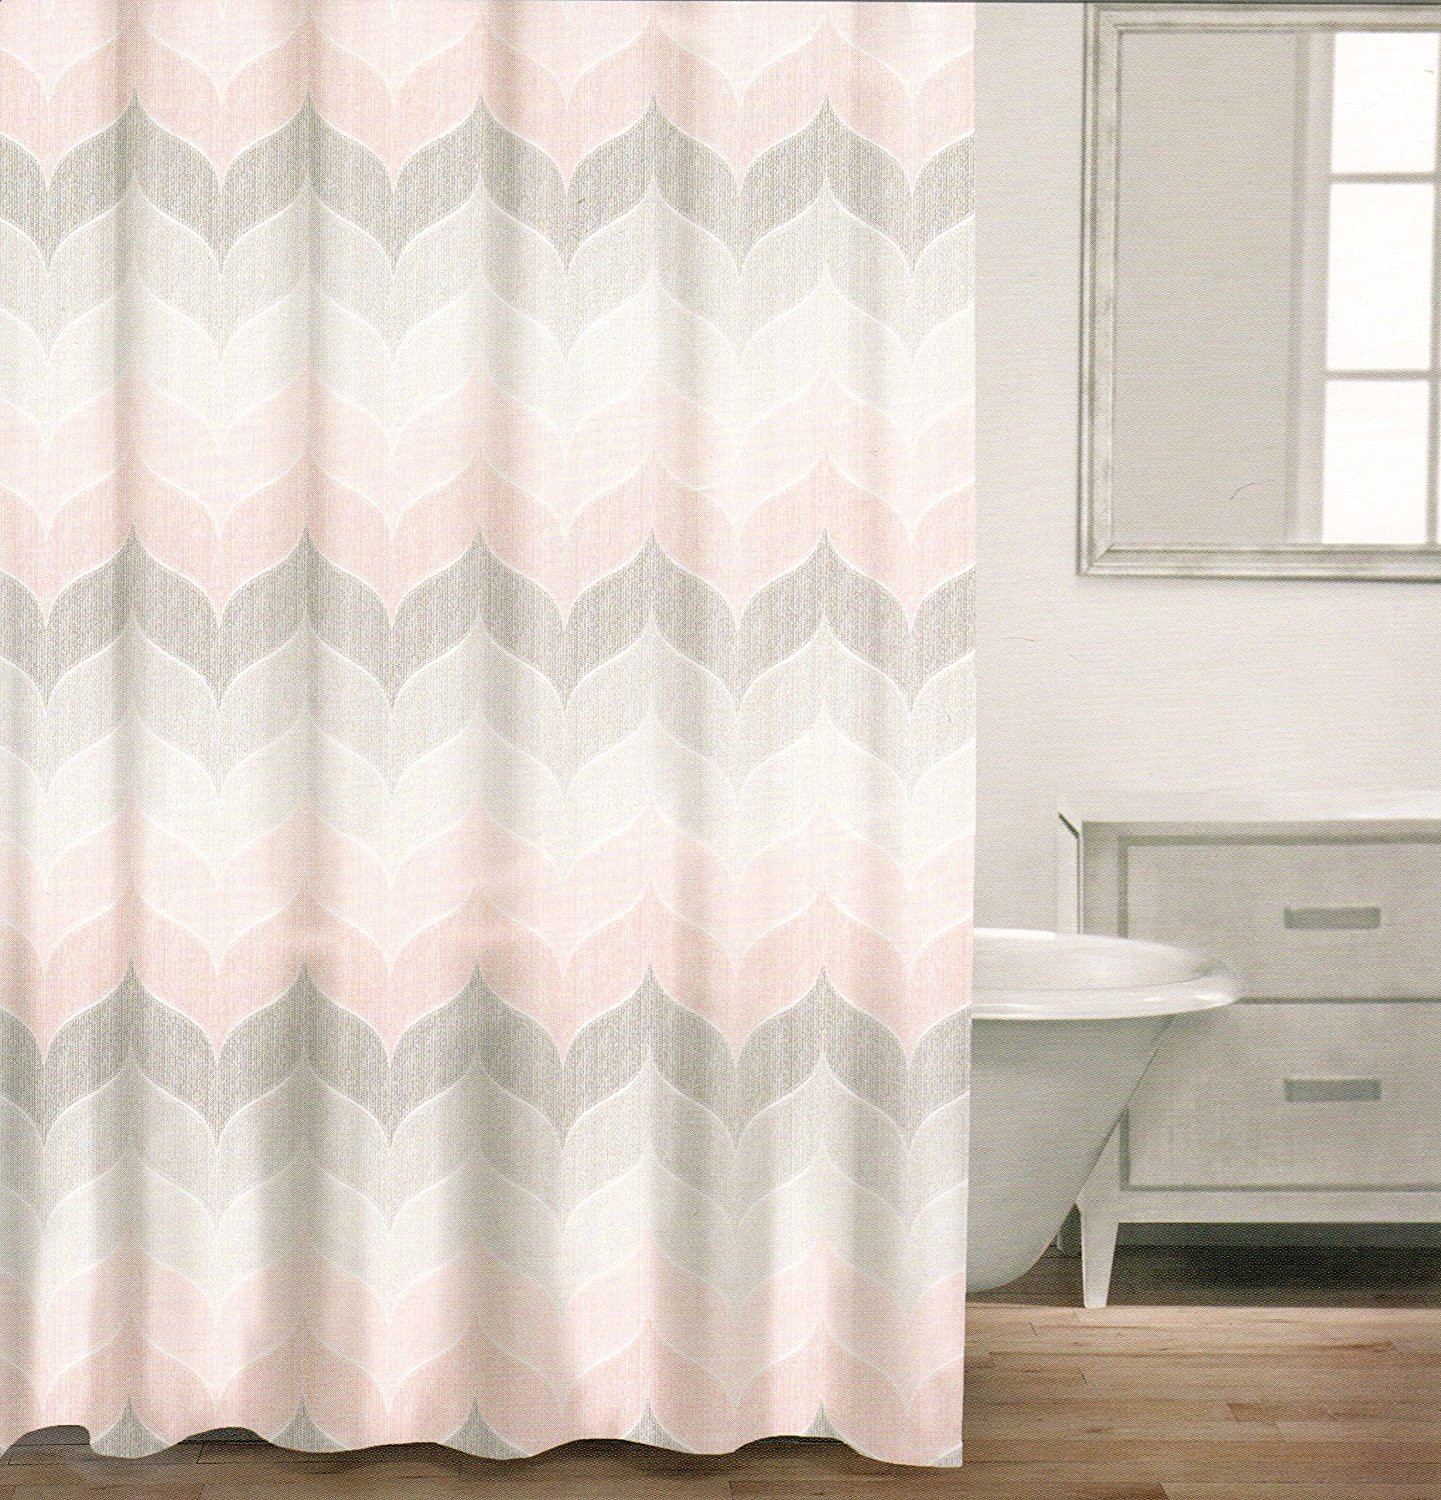 s in knight altmeyer by gray bath tier popular dove mulberry curtains curtain saturday grey shower holden